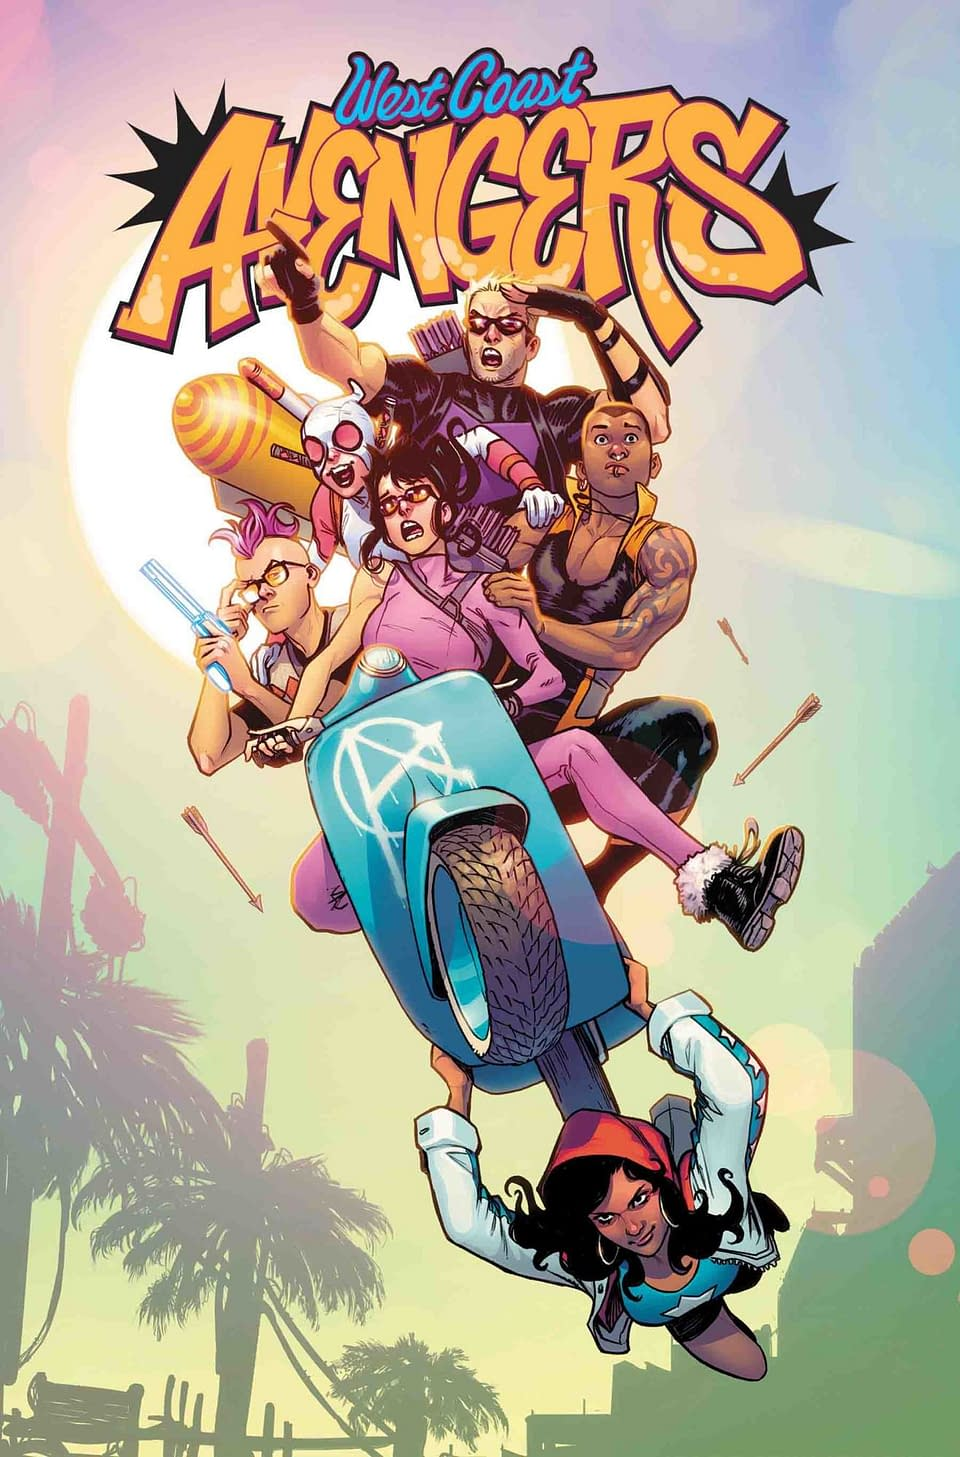 The West Coast Avengers Return in New Series by Kelly Thompson and Stefano Caselli